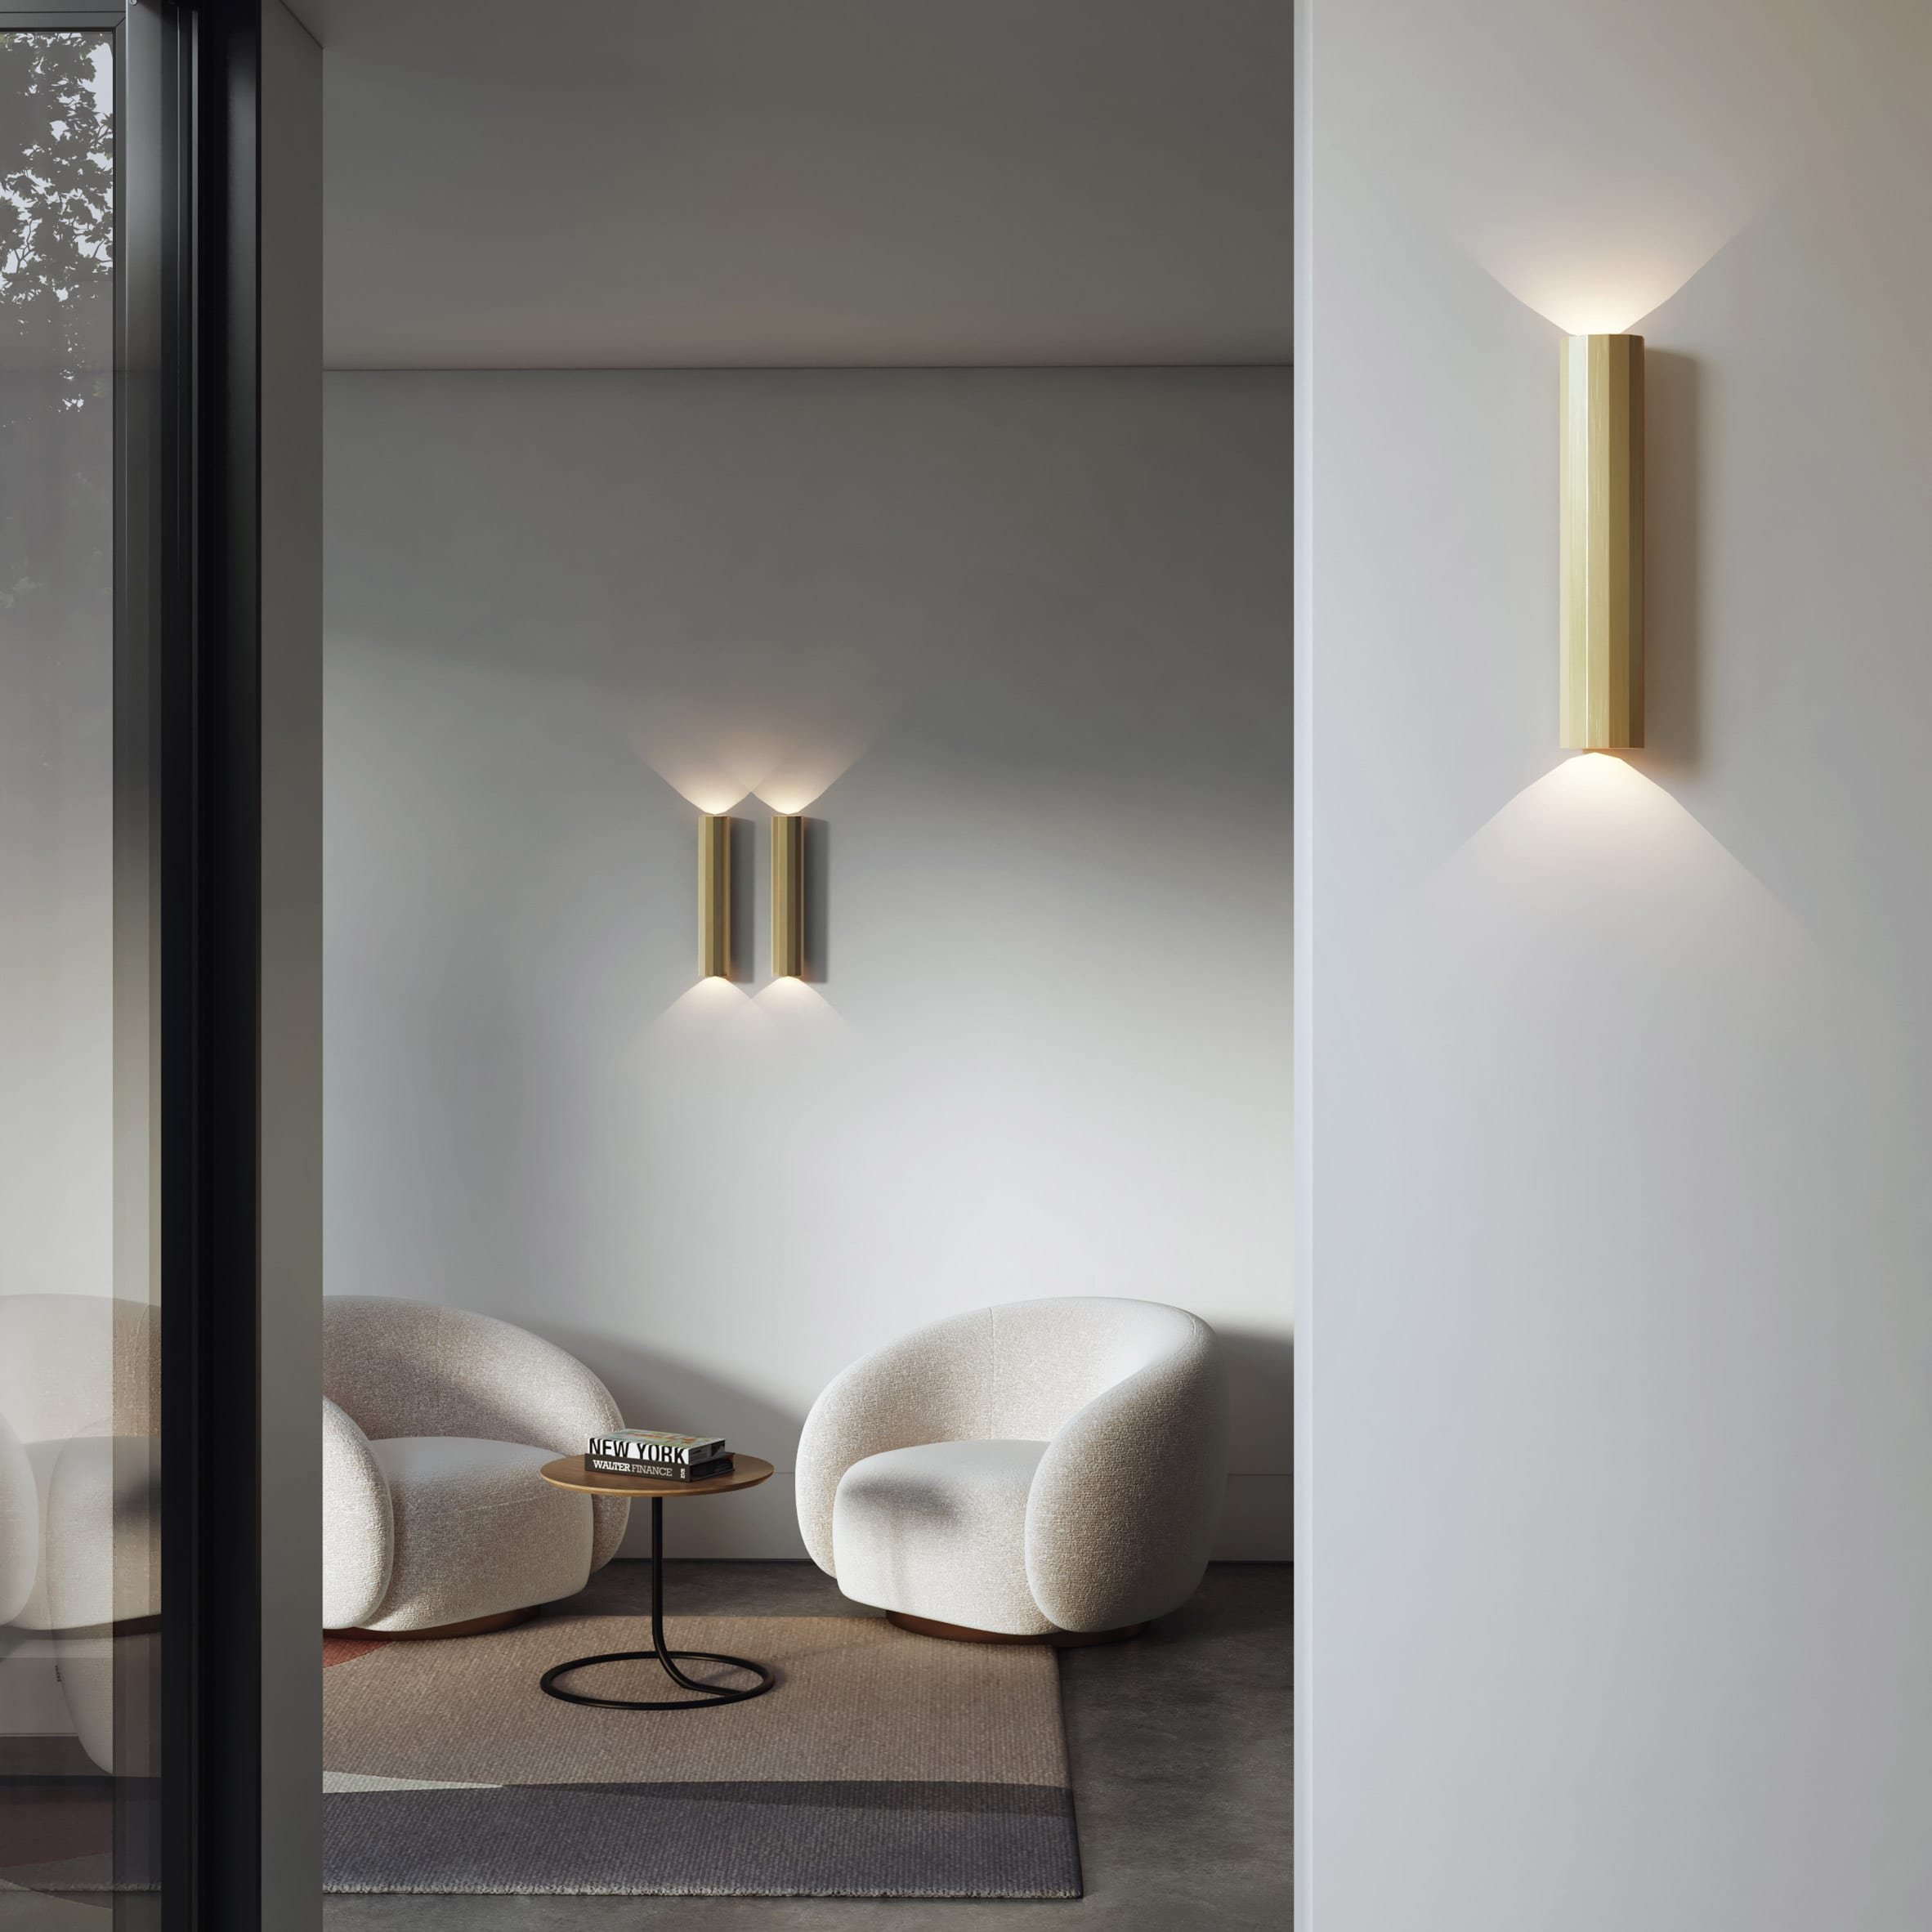 Hashira lights by Astro Lighting affixed to a wall in a living room